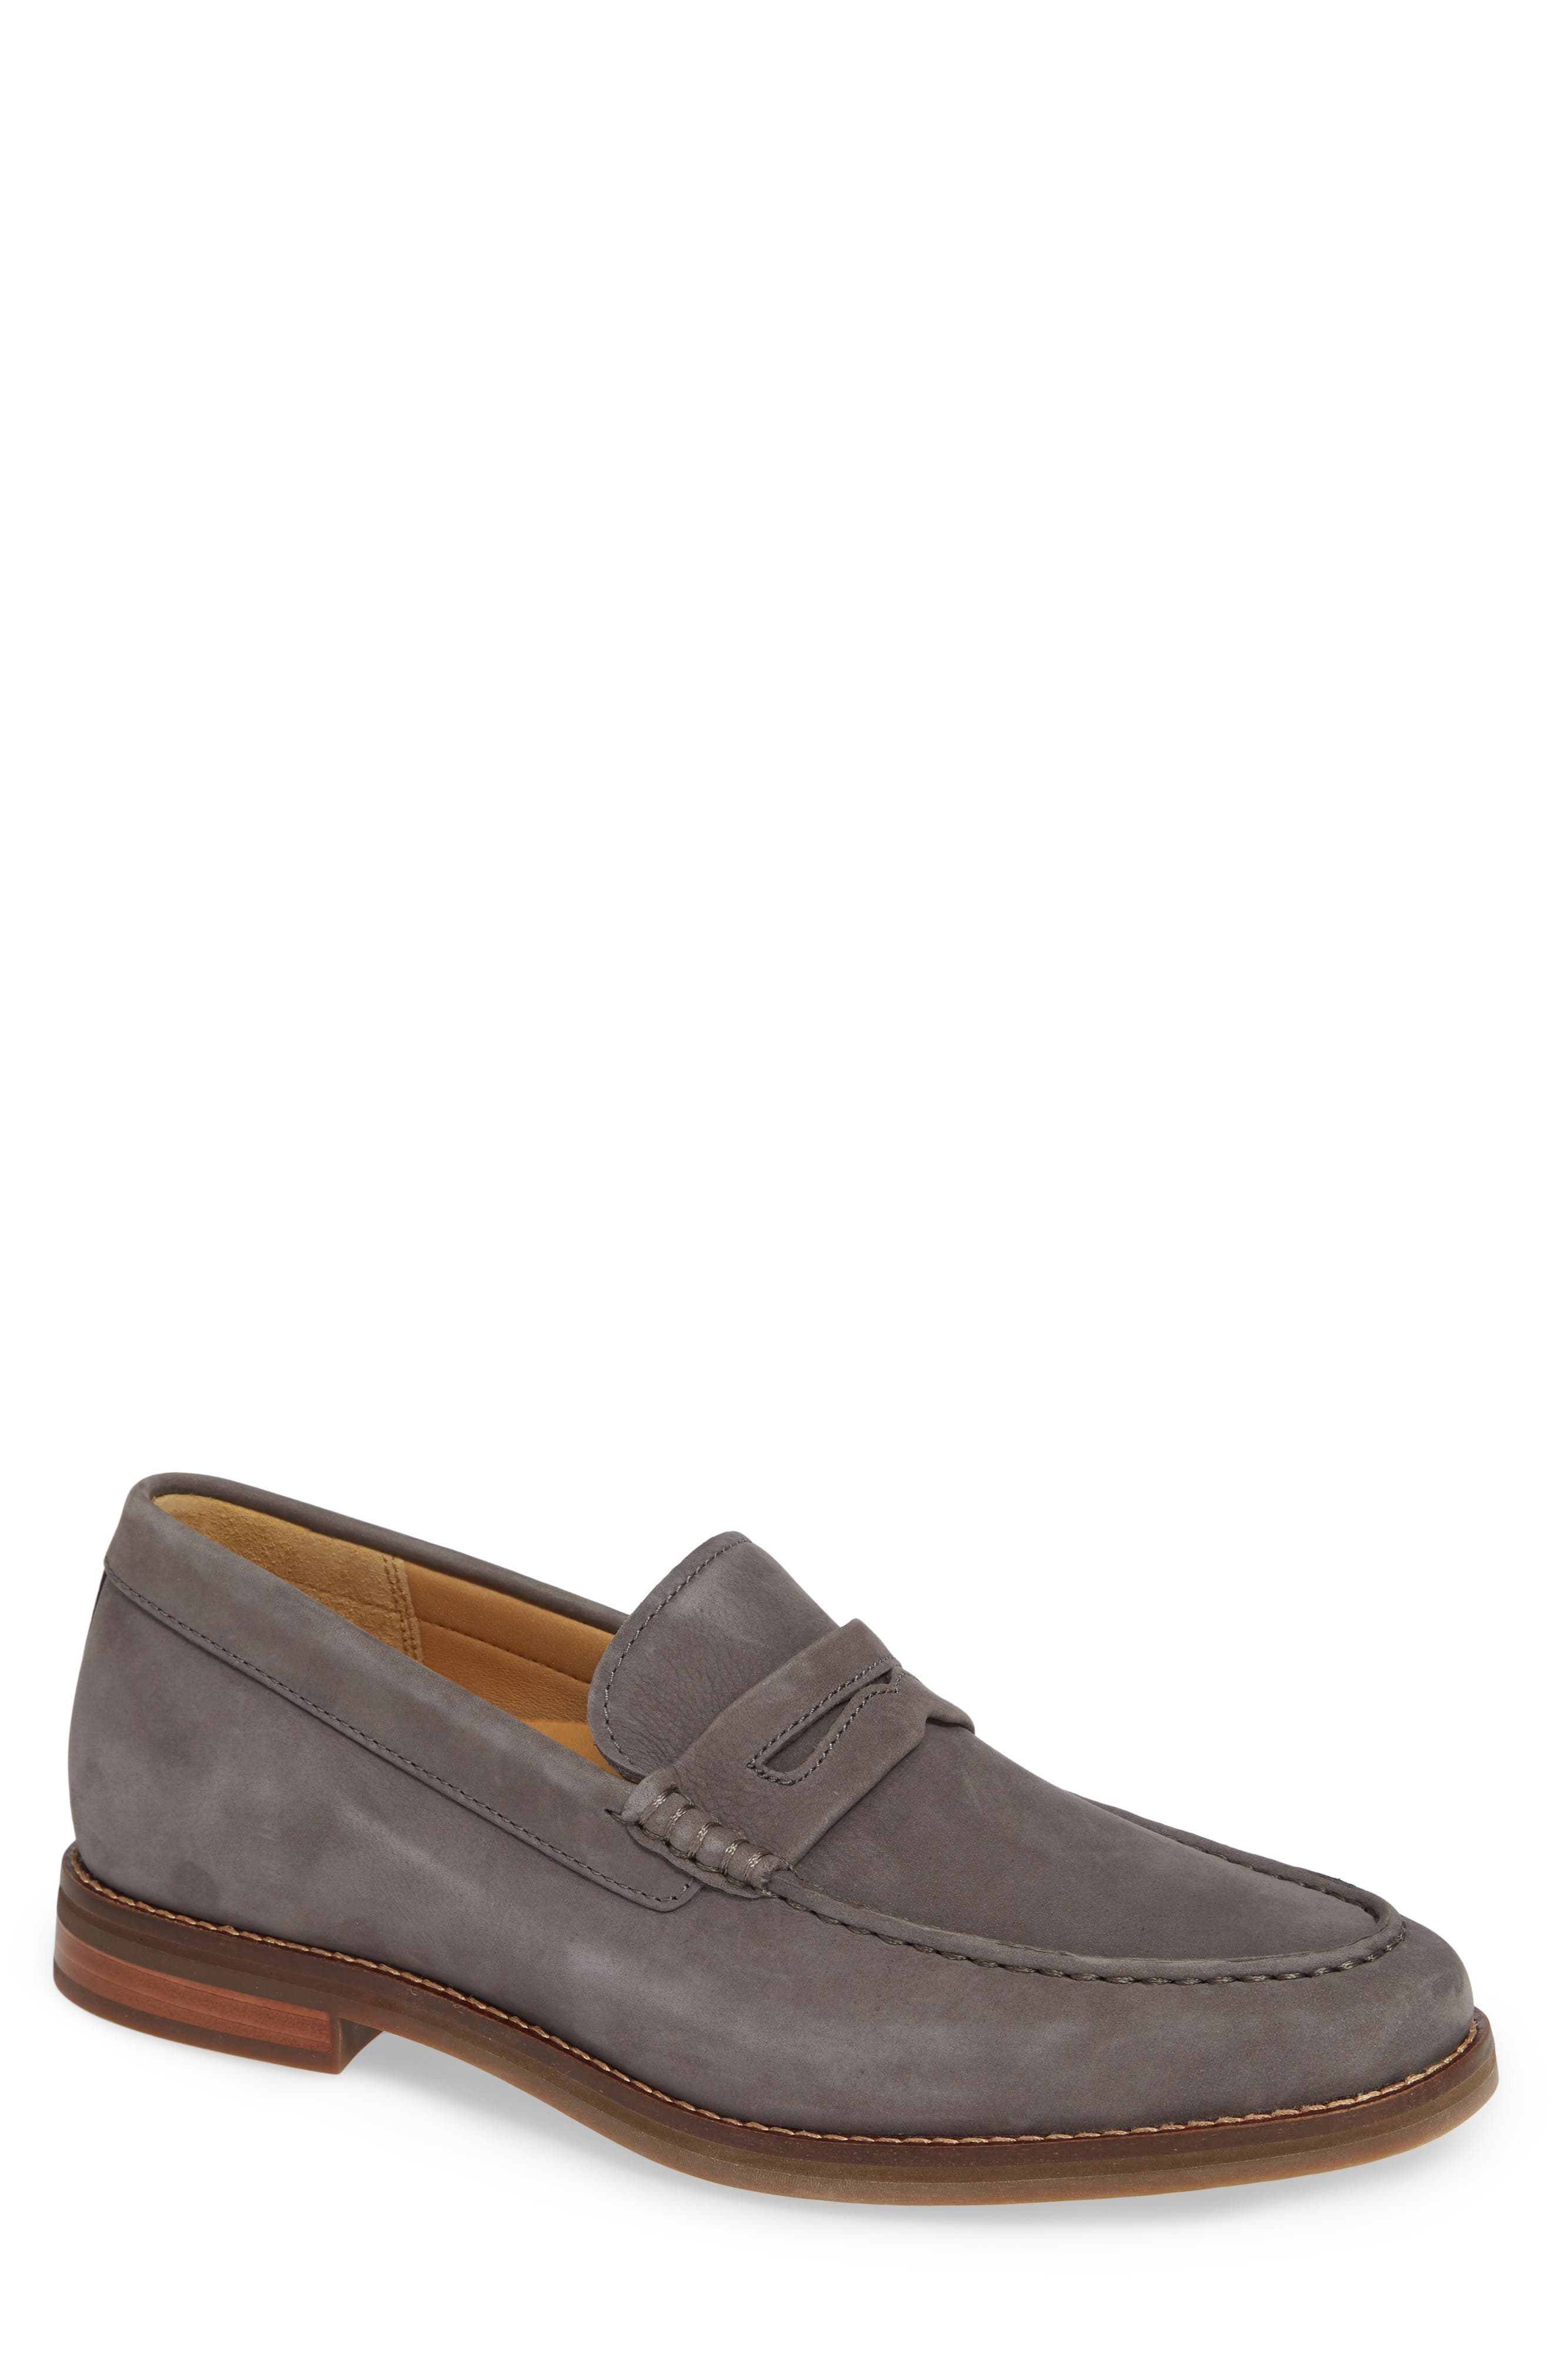 Gold Cup Exeter Penny Loafer,                         Main,                         color, GREY